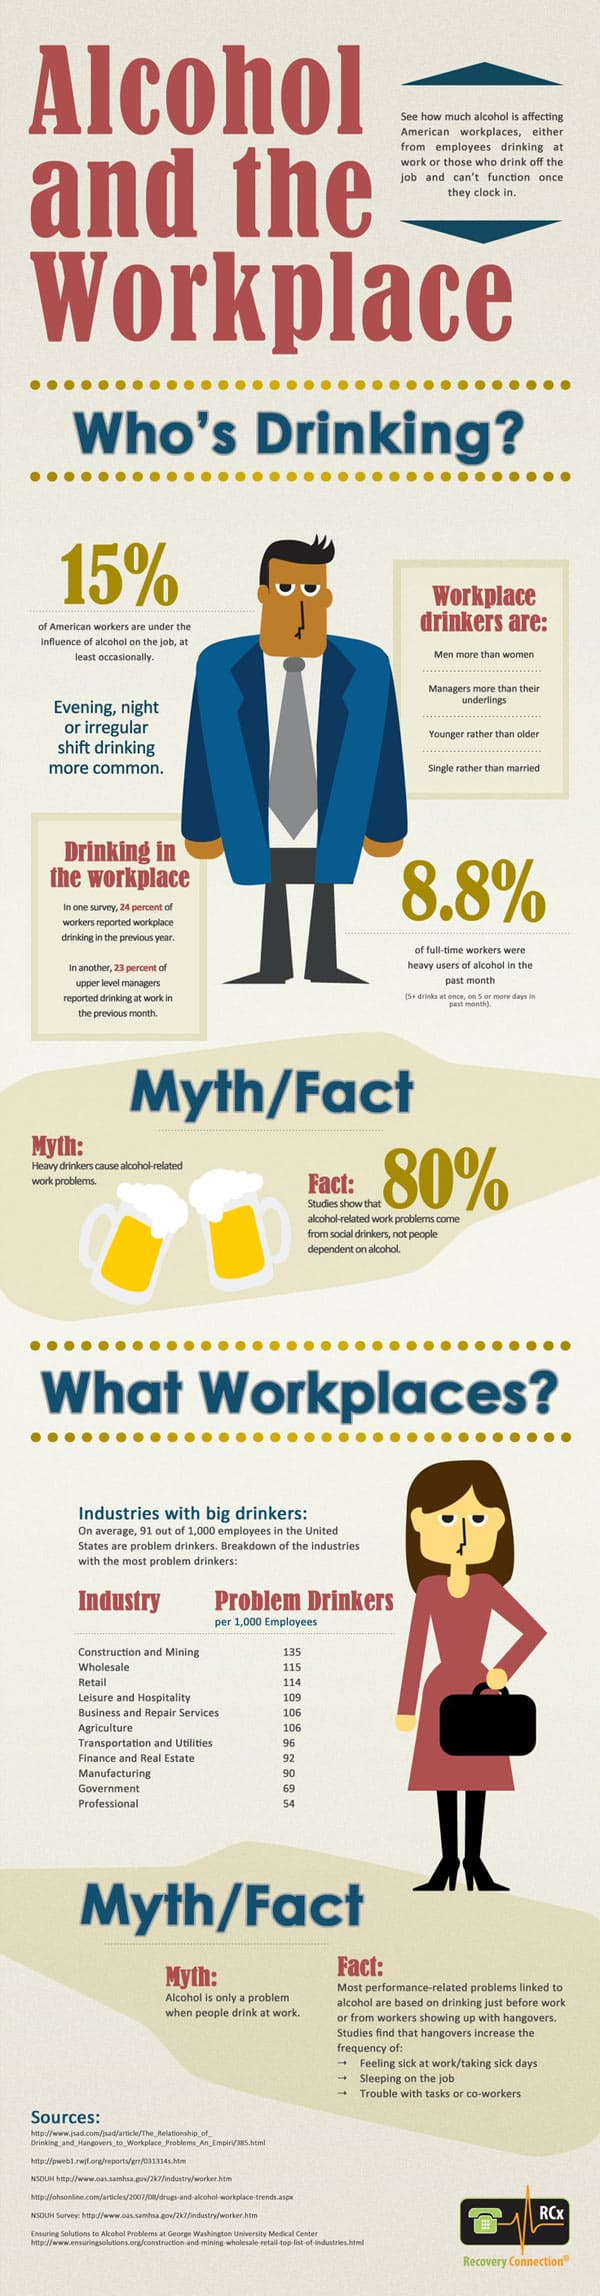 Alcohol-and-the-workplace